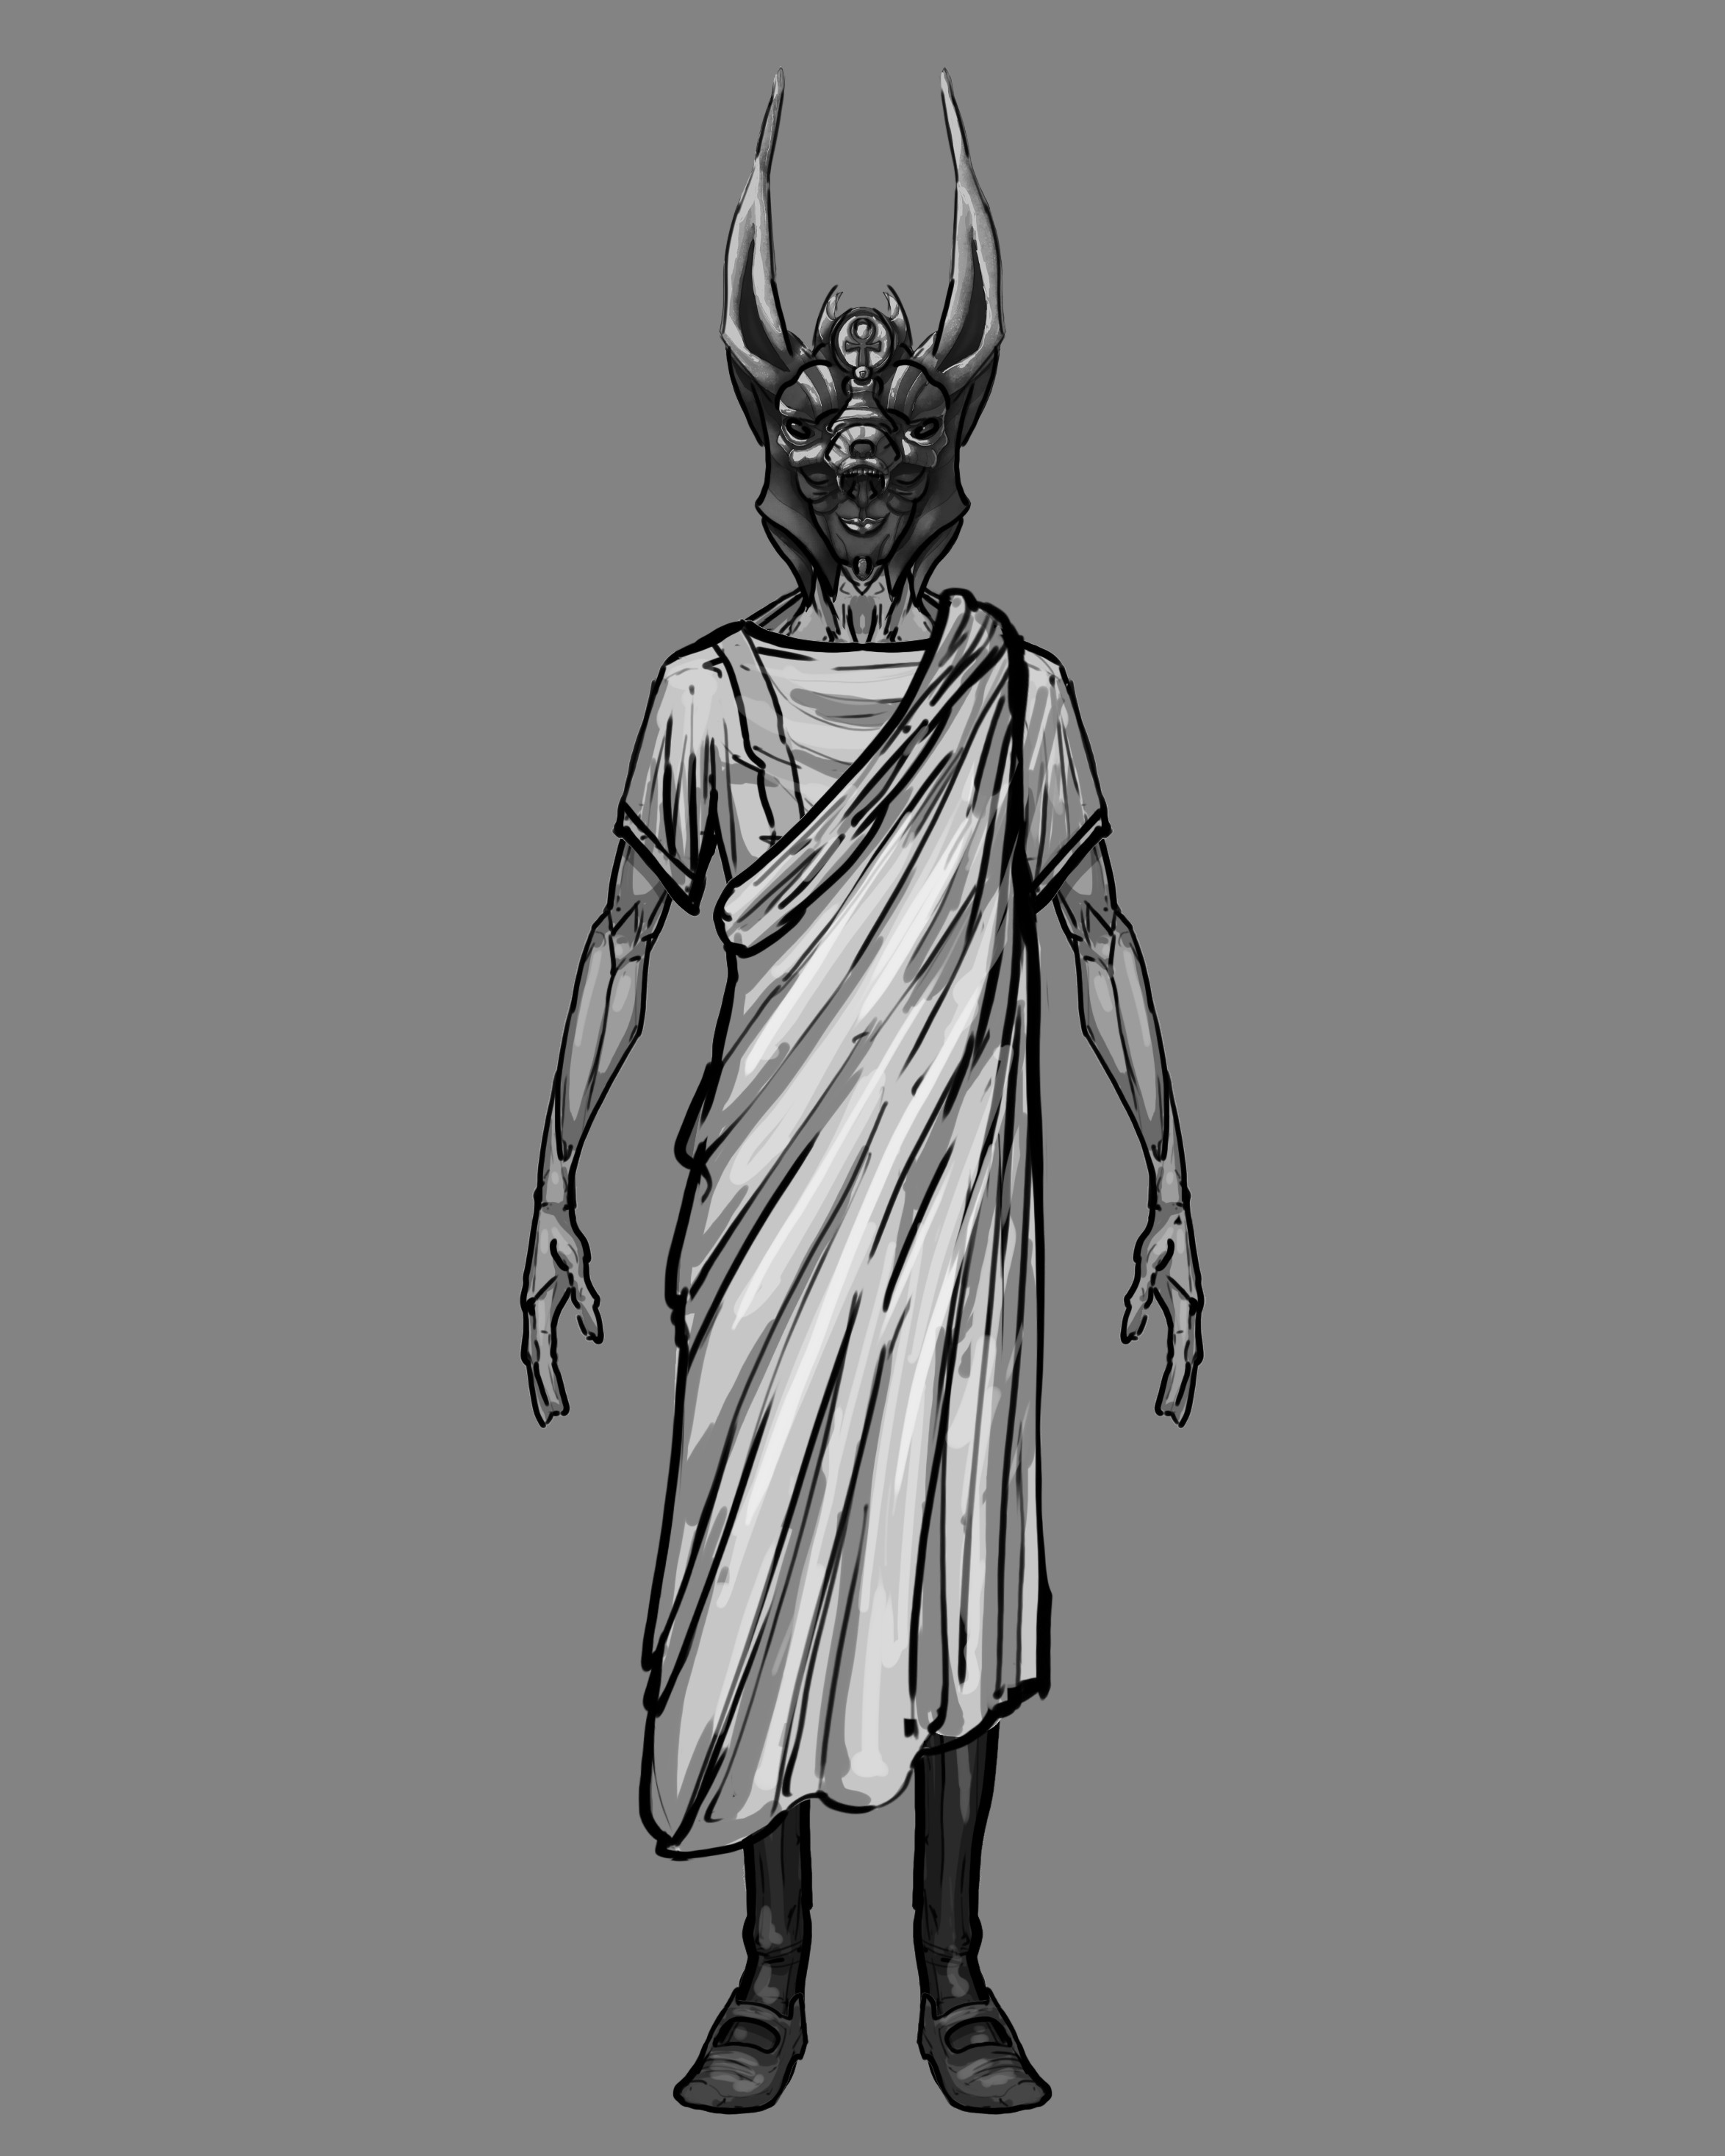 Magister Deorum with his mask.